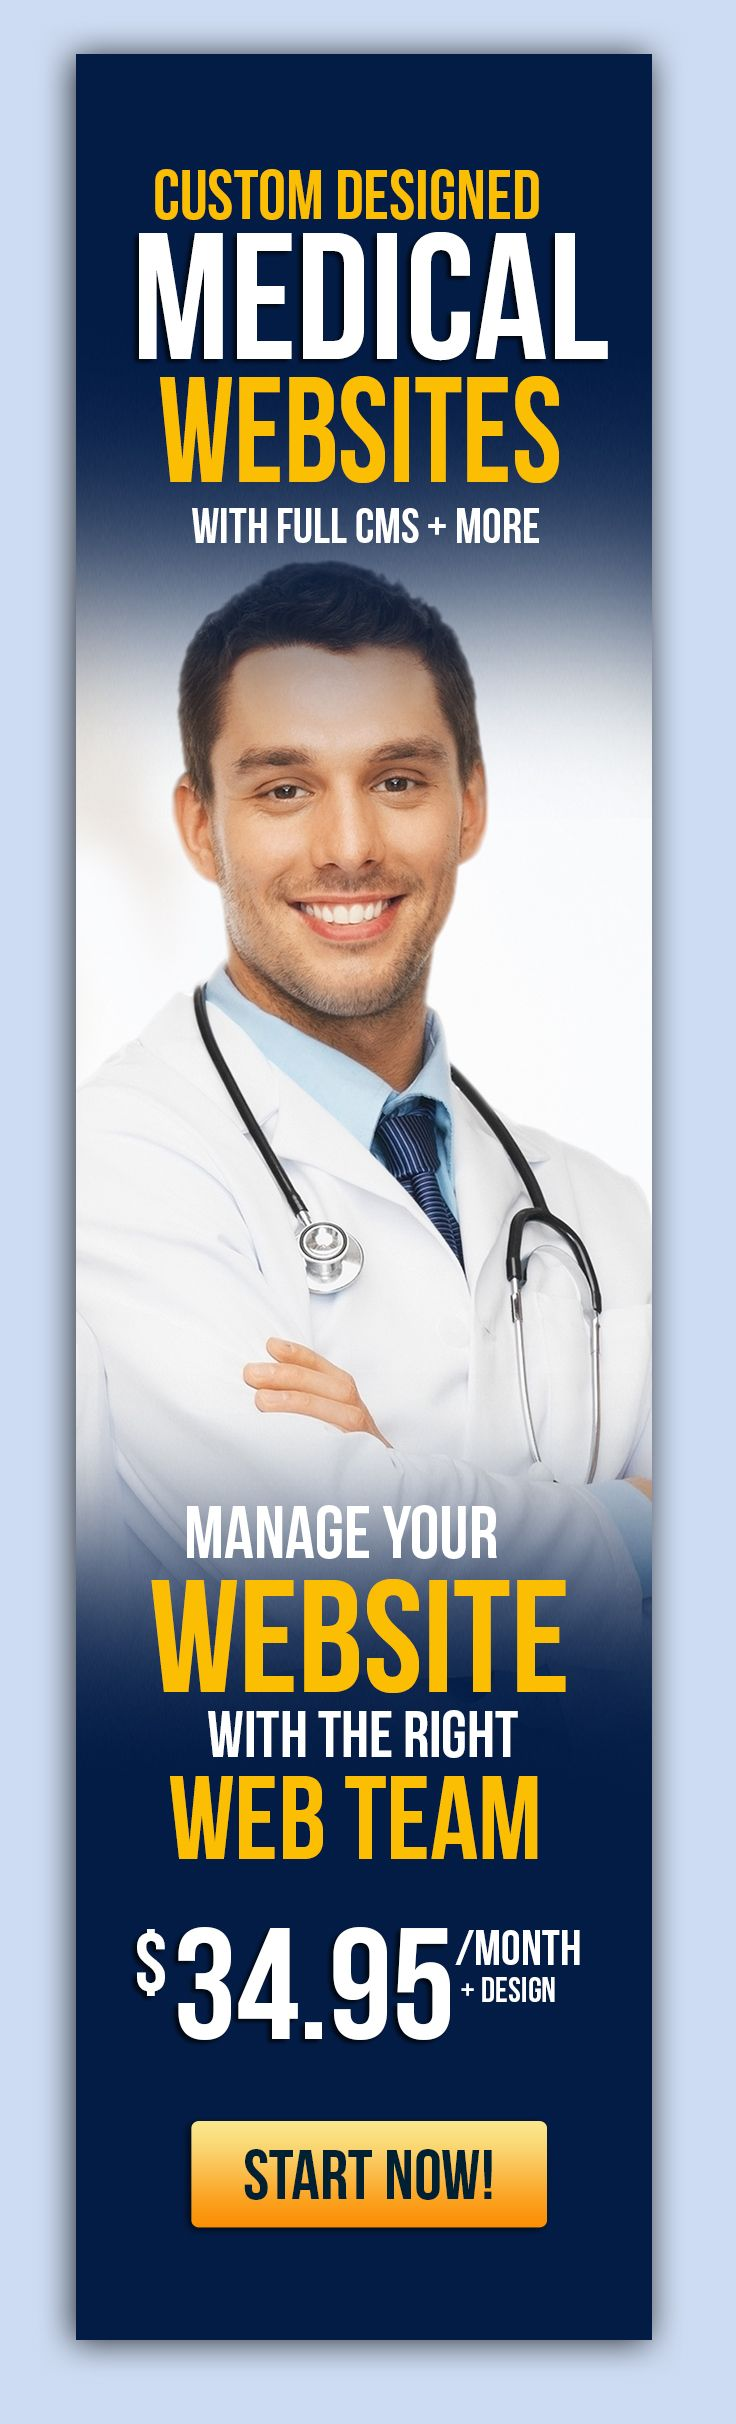 Medical websites, Tampa Primary Care, Family doctor, Primary care doctor, Urgent Care, Dentist websites, Pregnancy Care websites, Teen Pregnancy, Teen Counseling websites, Physical Therapy websites,  small business websites and  CMS.